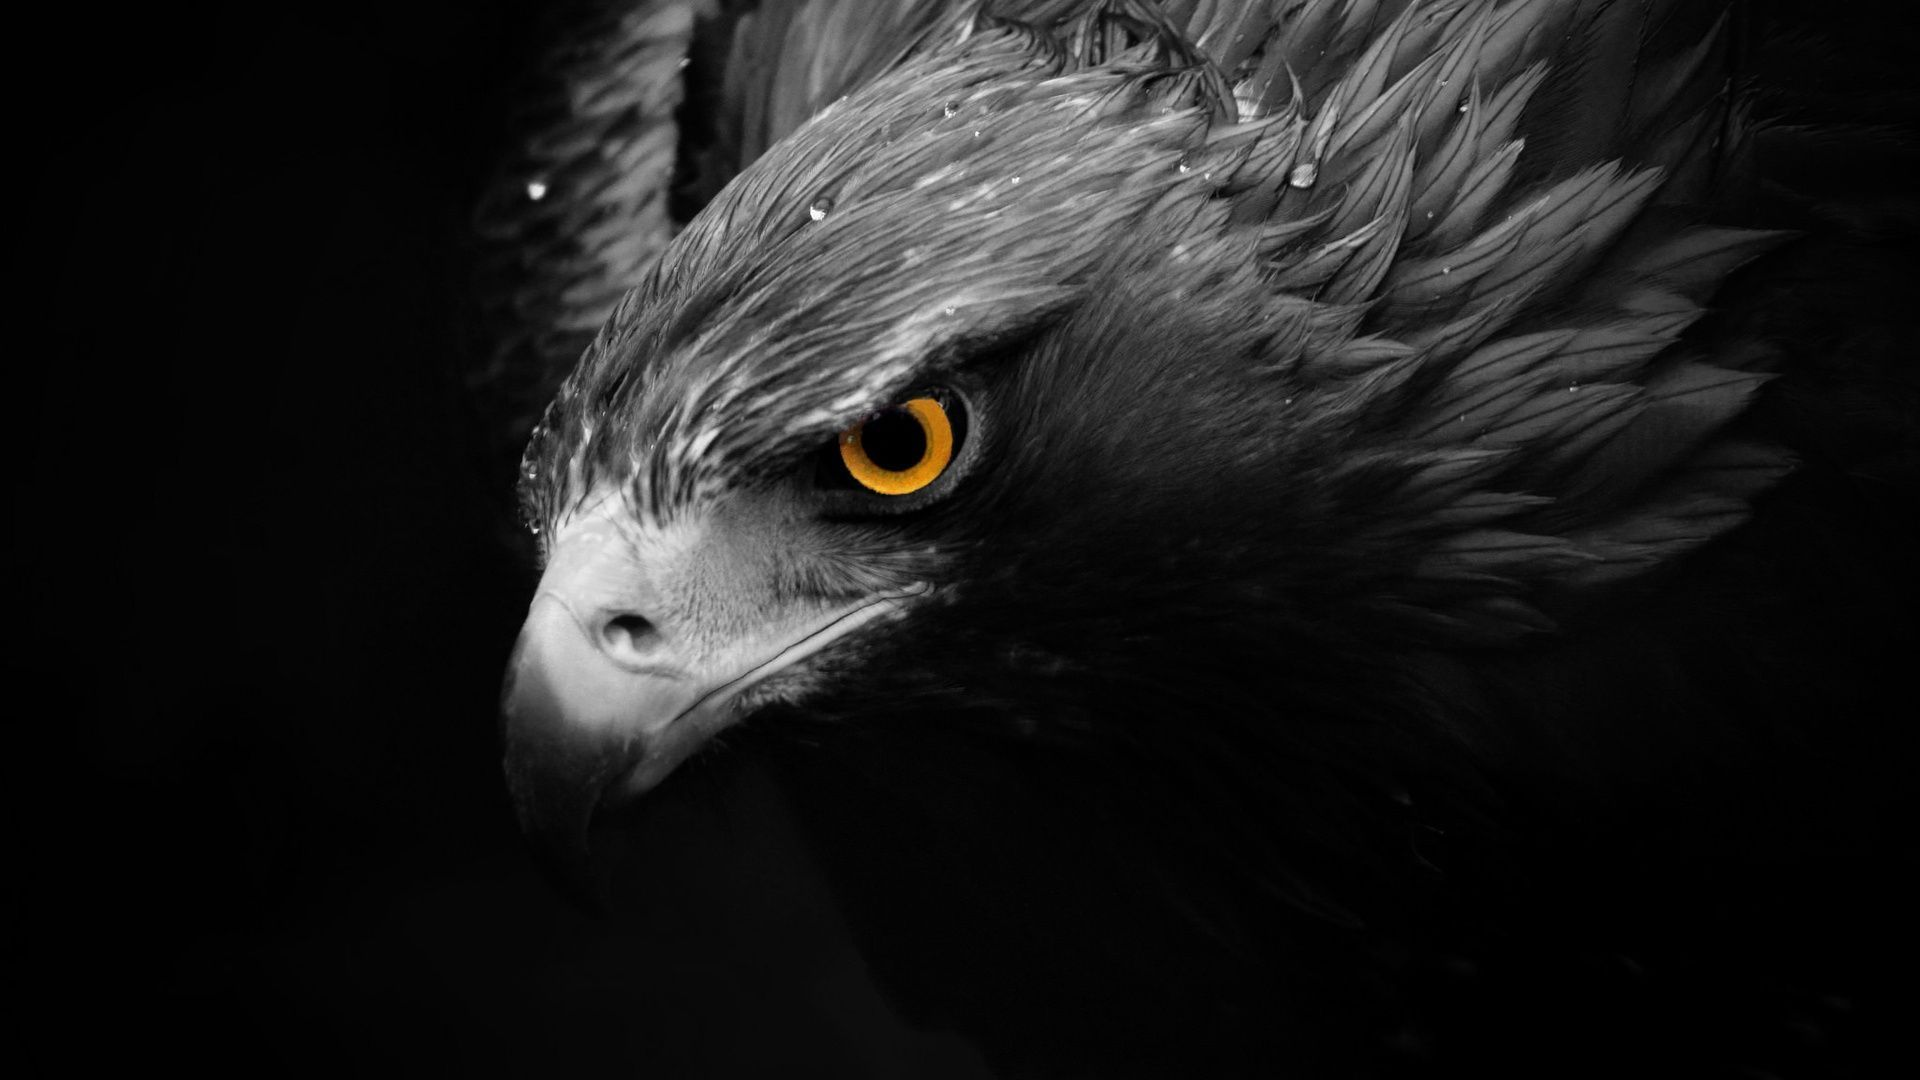 eagle bird images hd free download